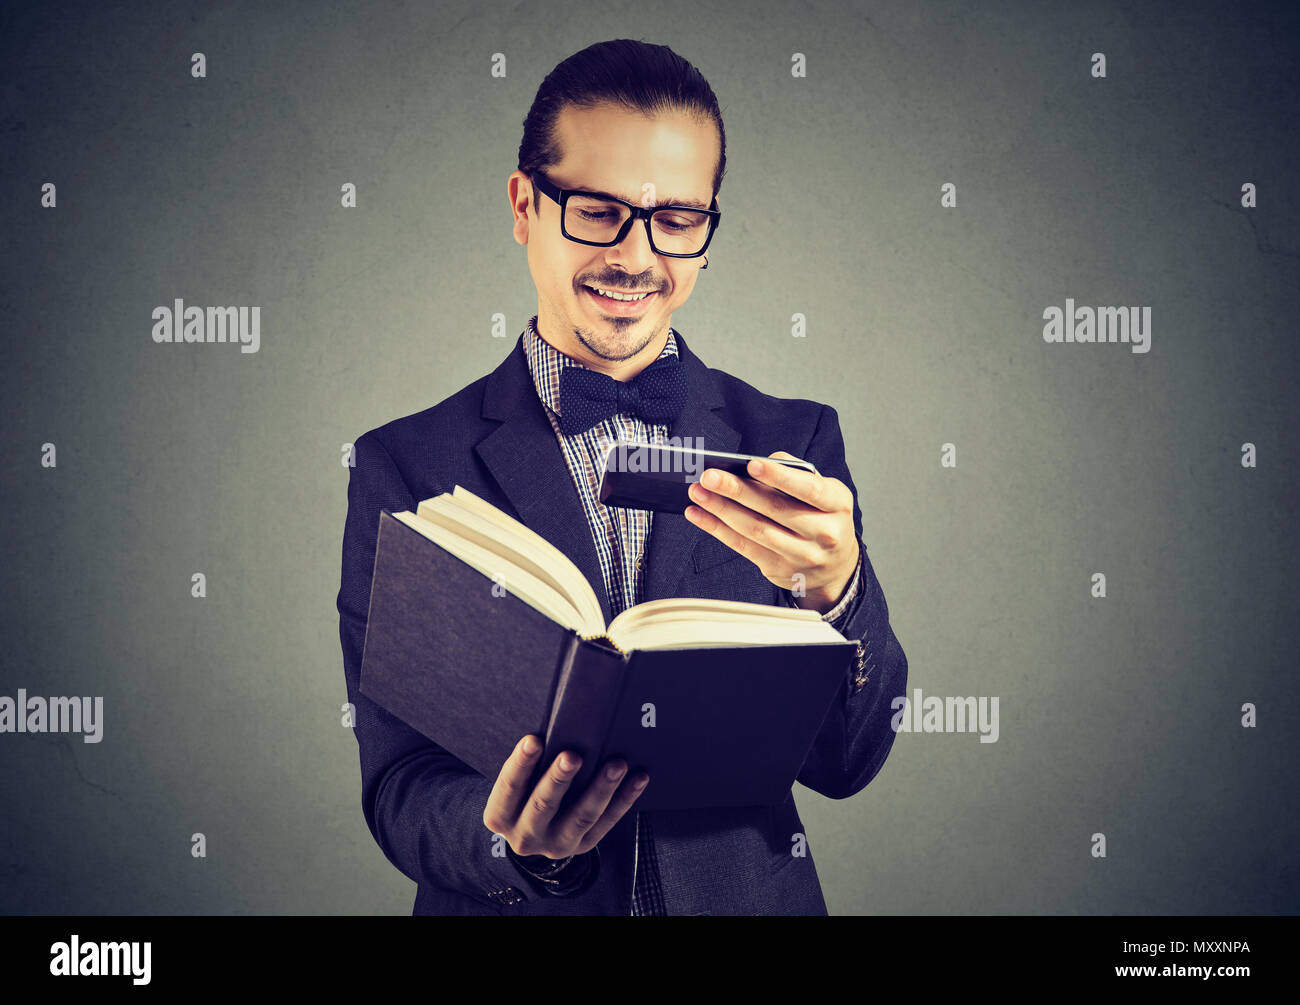 Young man in suit and glasses scanning information in book using phone and breaking copyrights. - Stock Image